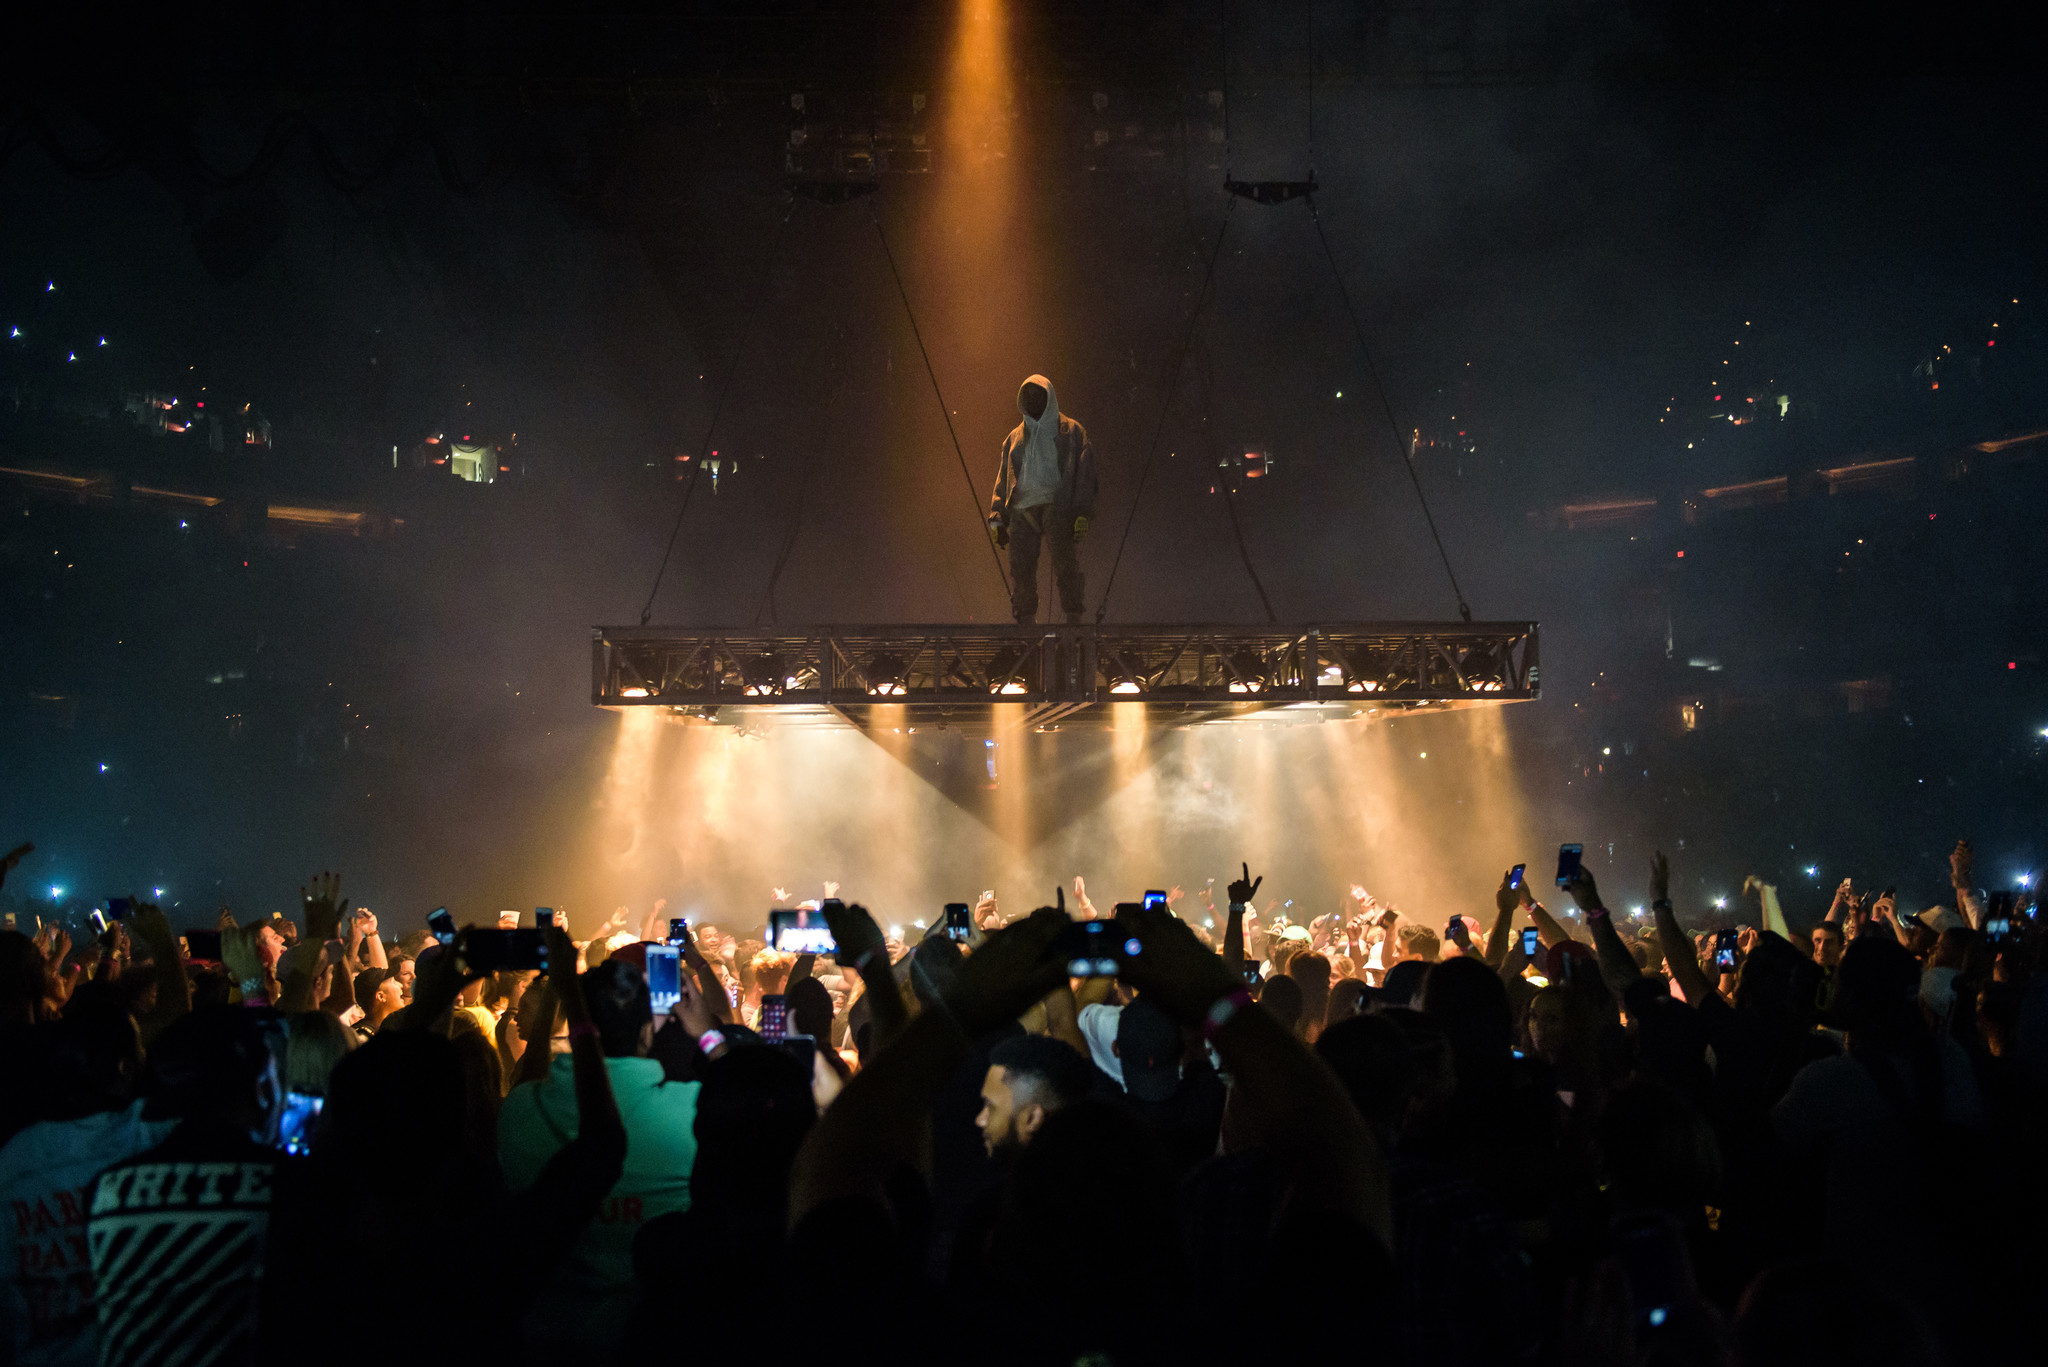 Kanye West is still the strongest force in pop music Chicago Tribune